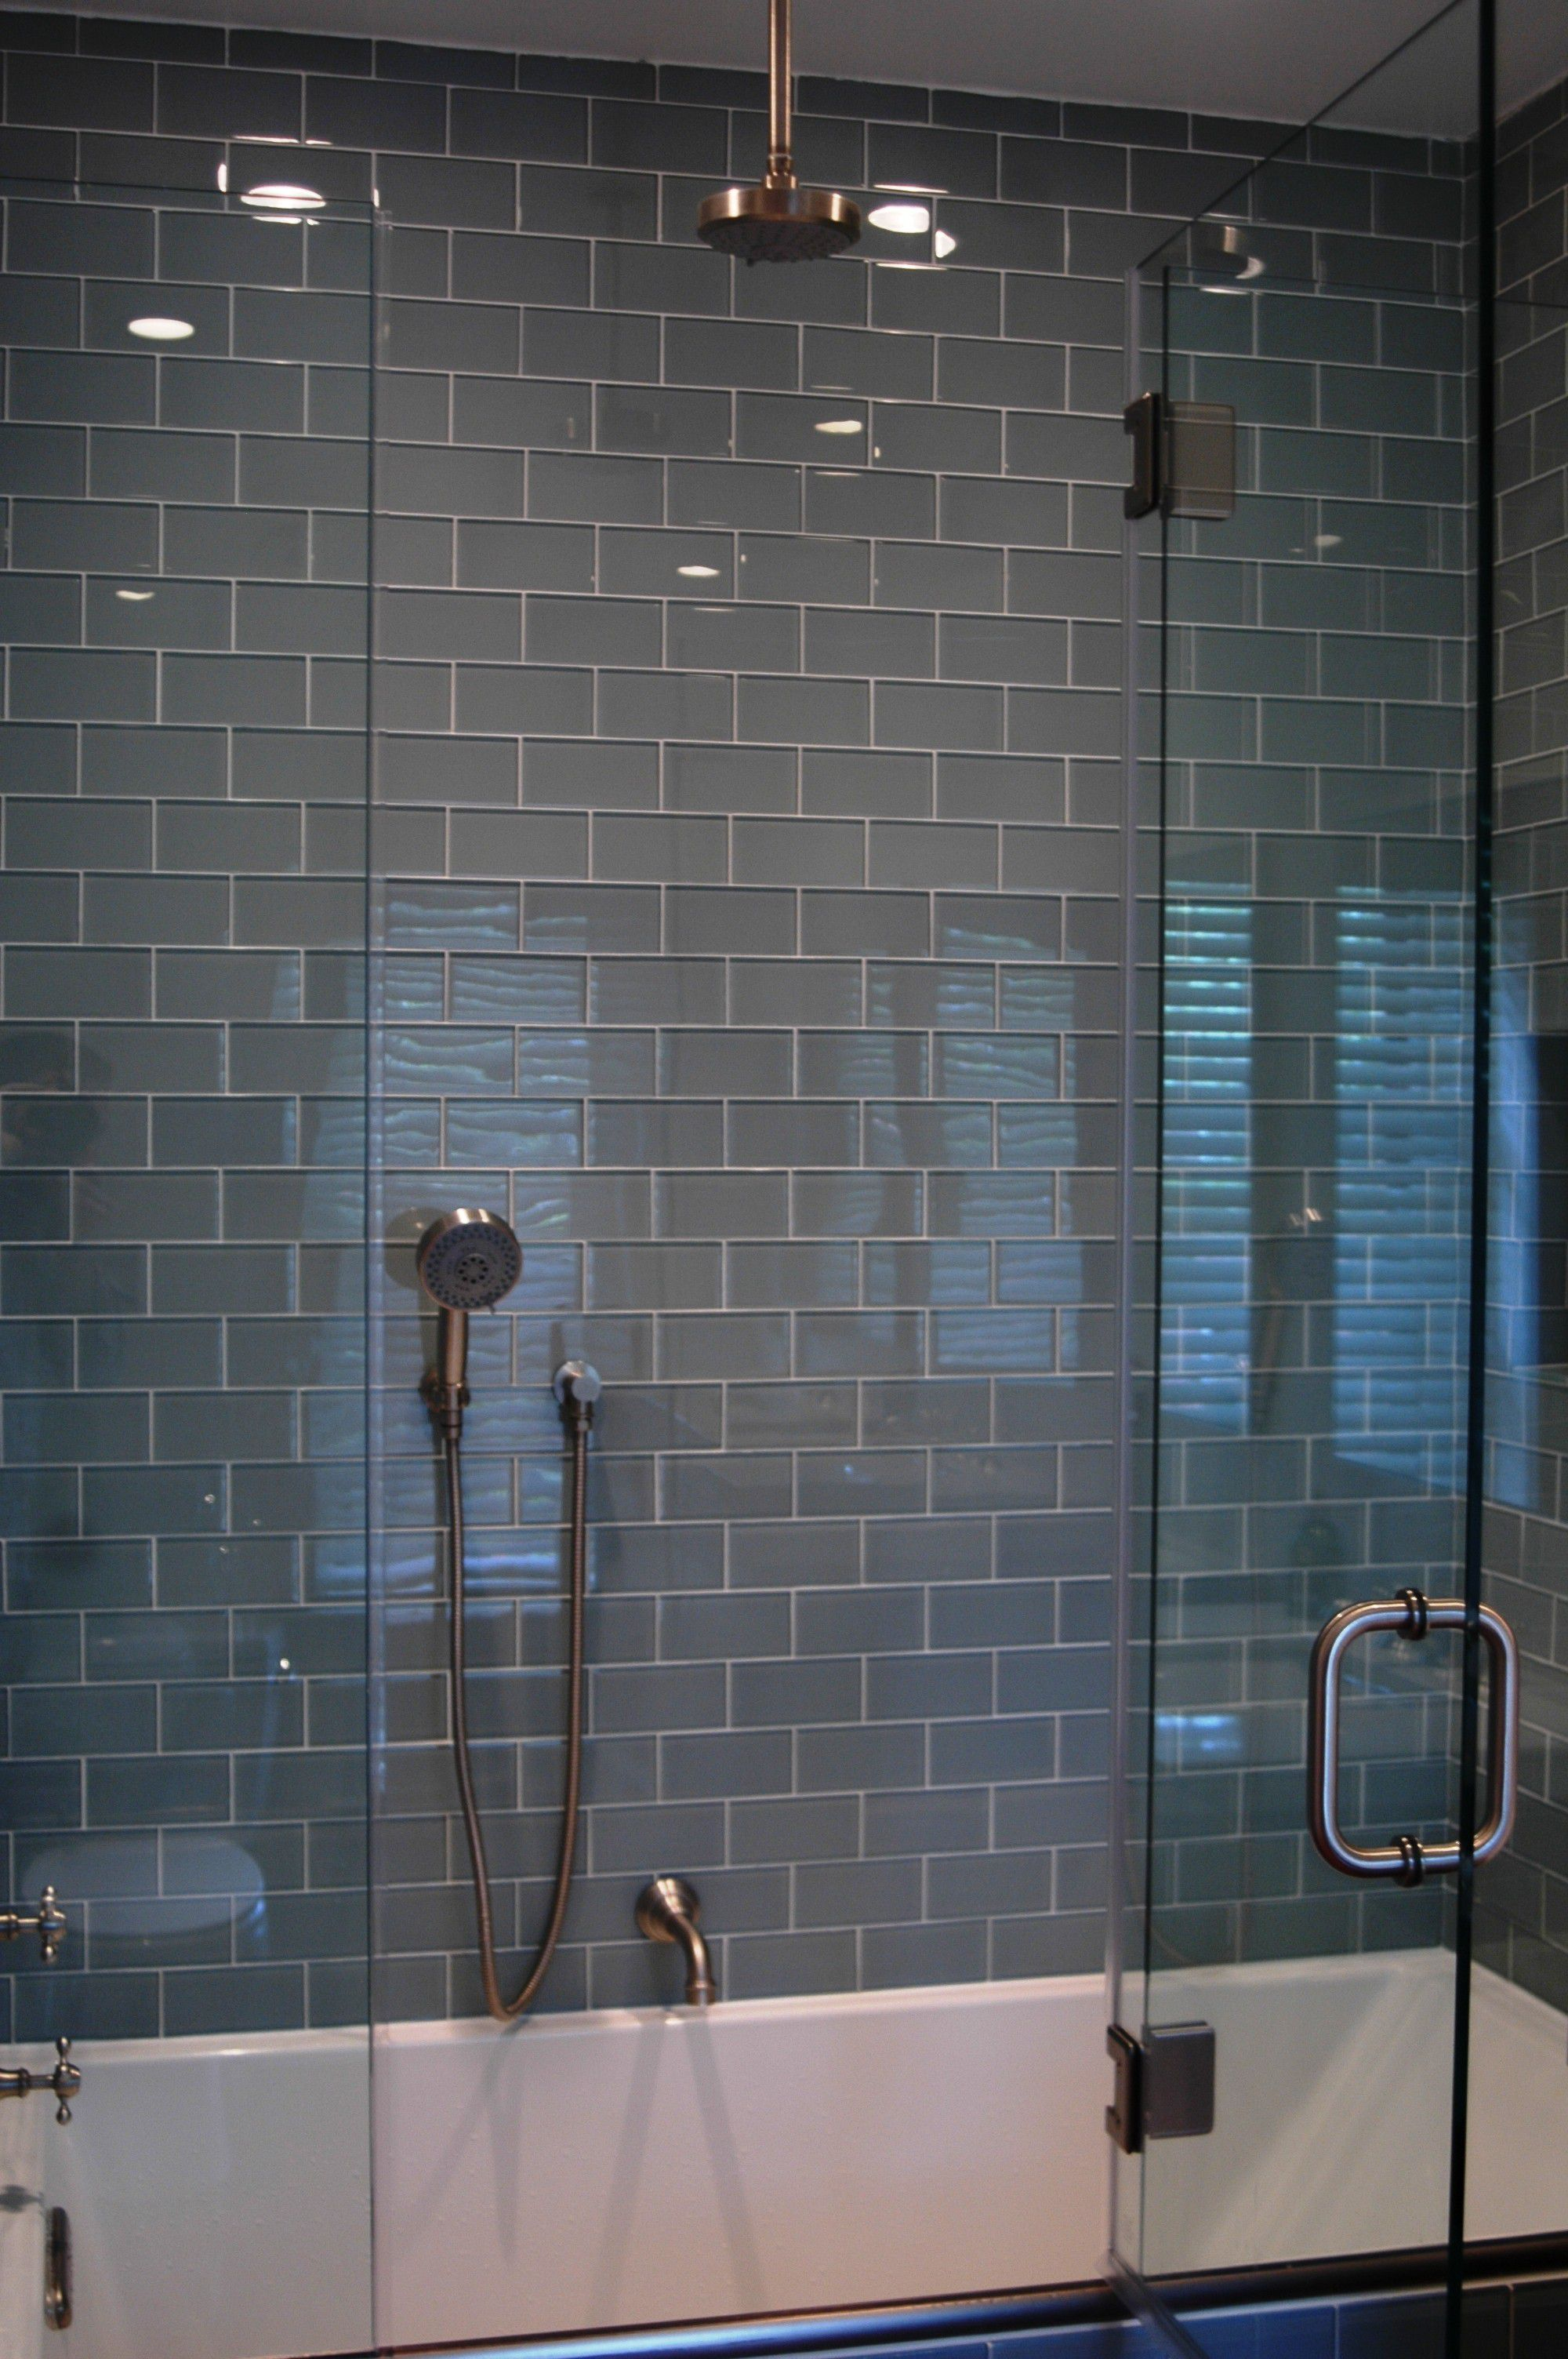 White Bathtub and Glass Shower Door under Glossy Faucet near Grey Subway Tile Shower